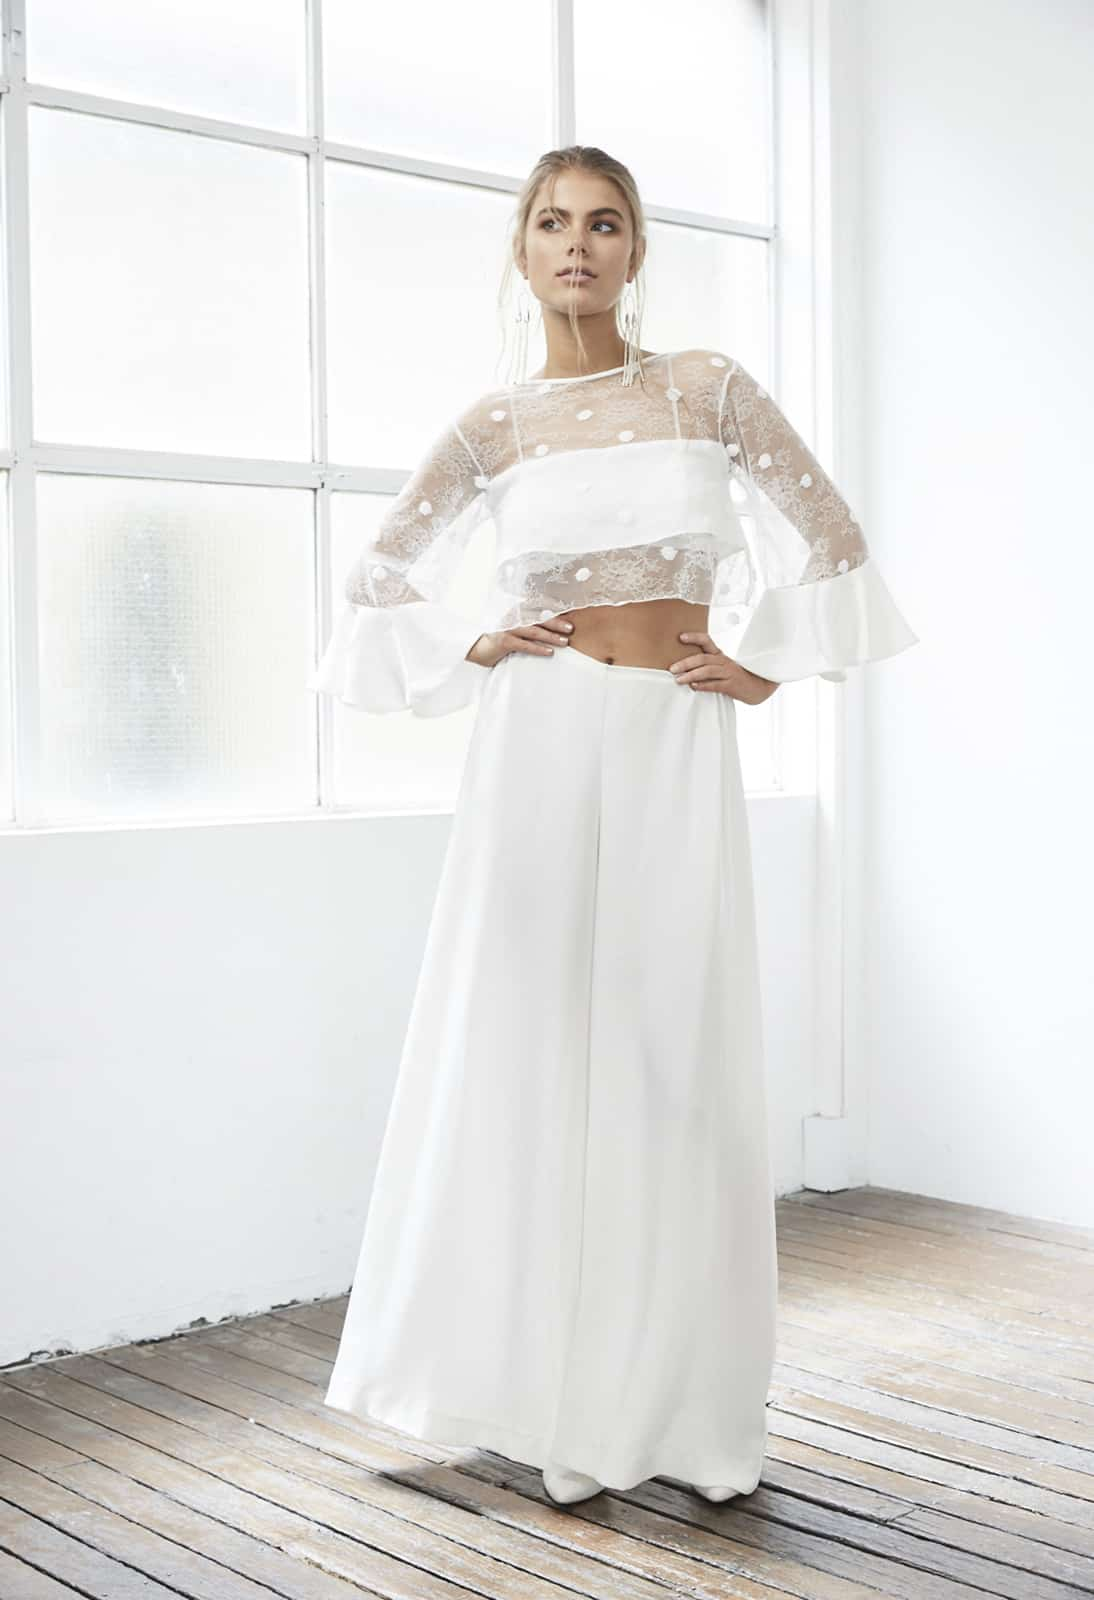 Top wedding dresses under $1000 - bridal separates by Grace Loves Lace